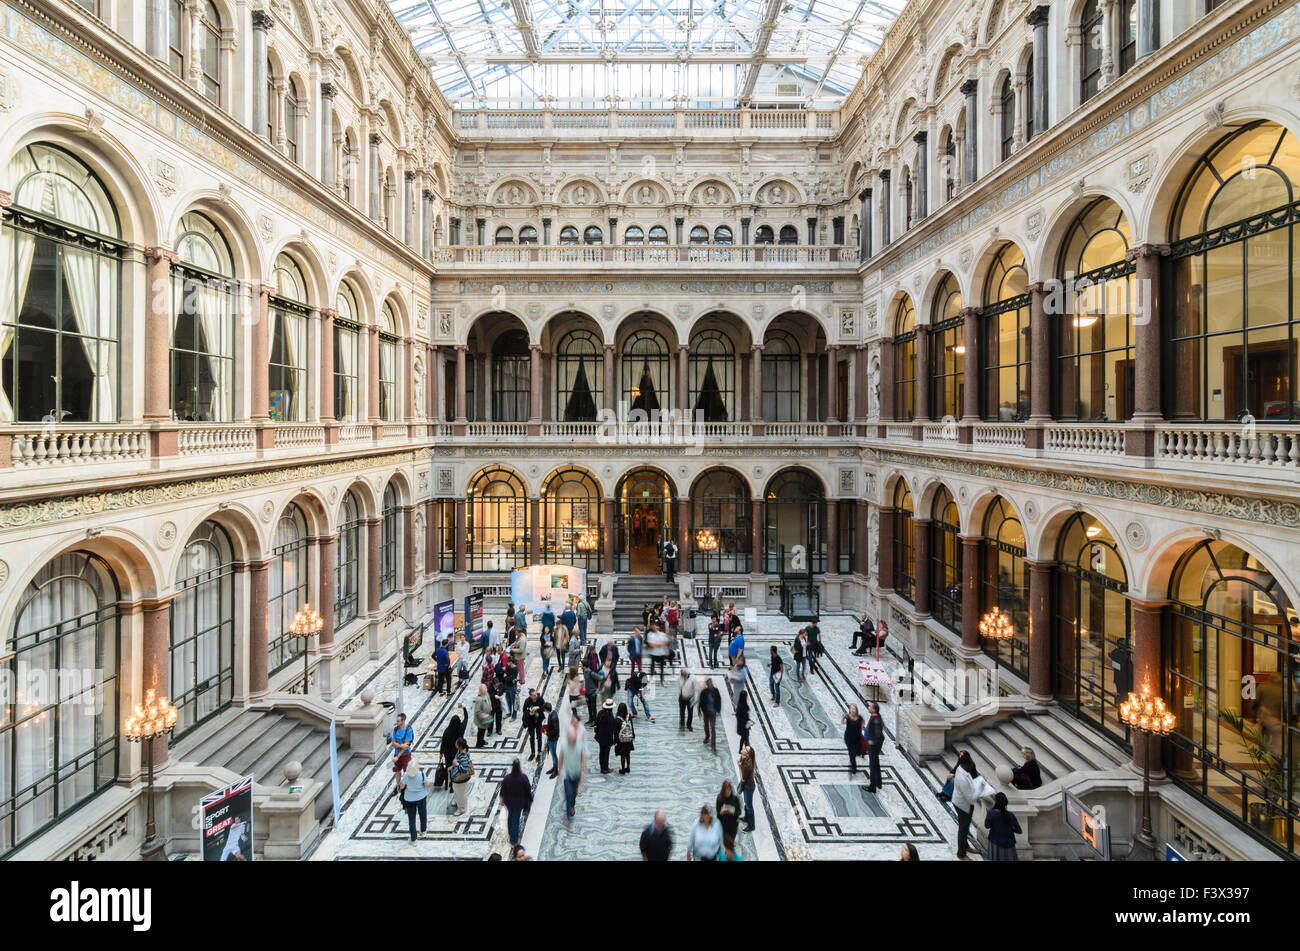 The durbar court inside the foreign and commonwealth office stock photo 88469171 alamy - British foreign commonwealth office ...